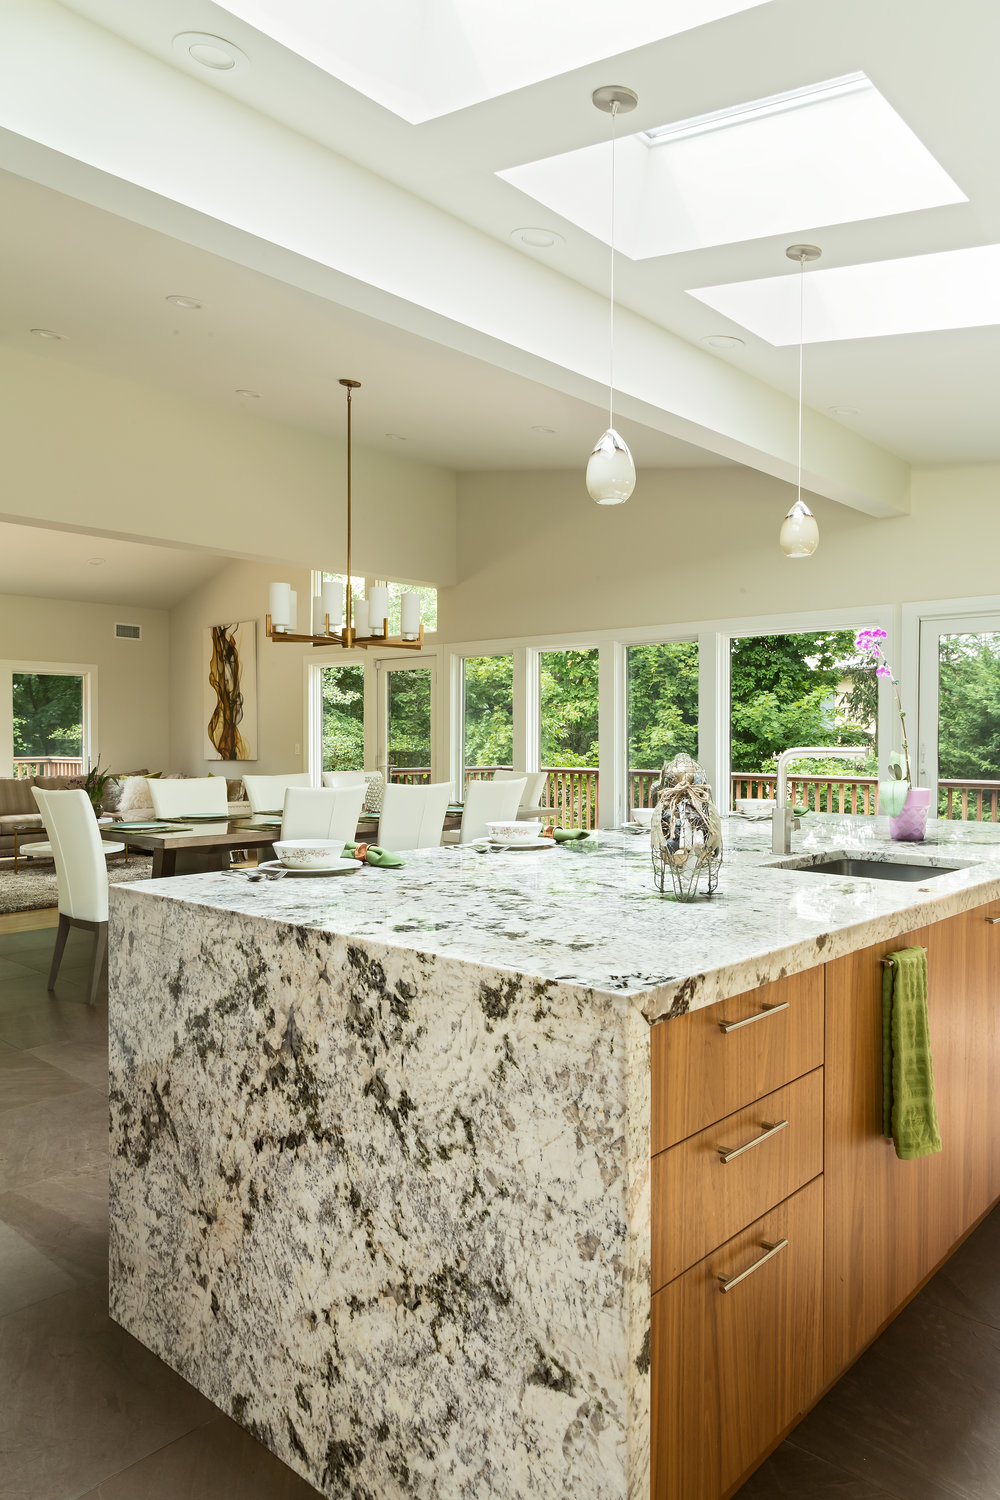 Contemporary style kitchen with pendant light fixtures